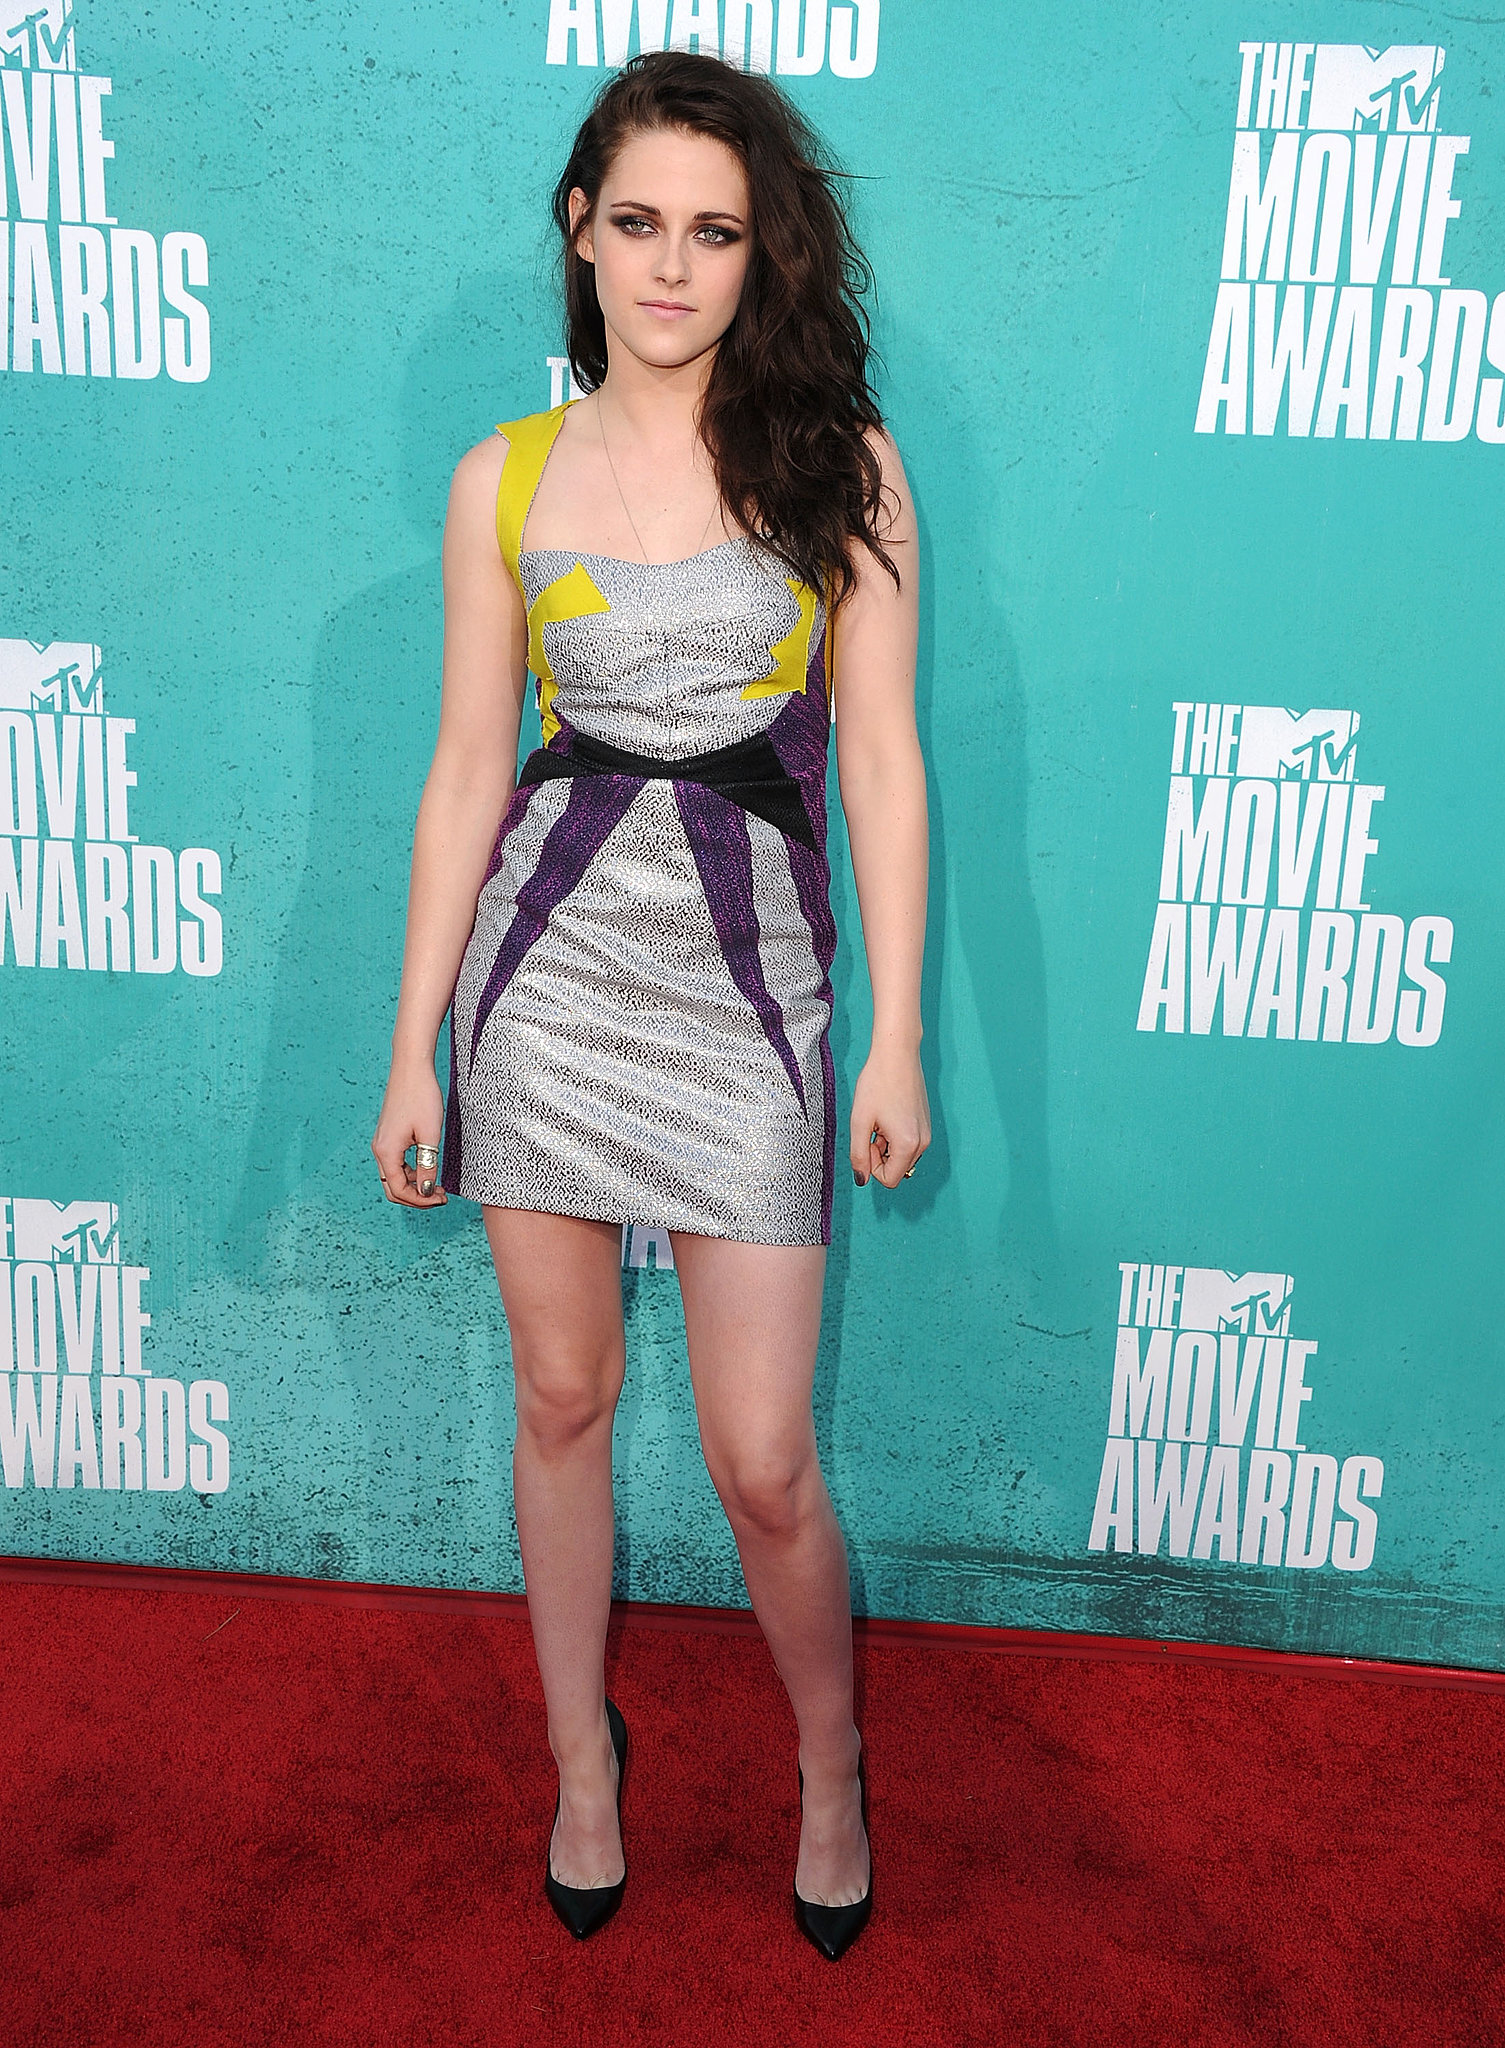 Stewart went for a formfitting, colorful Guishem mini at the MTV Movie Awards in June 2012.